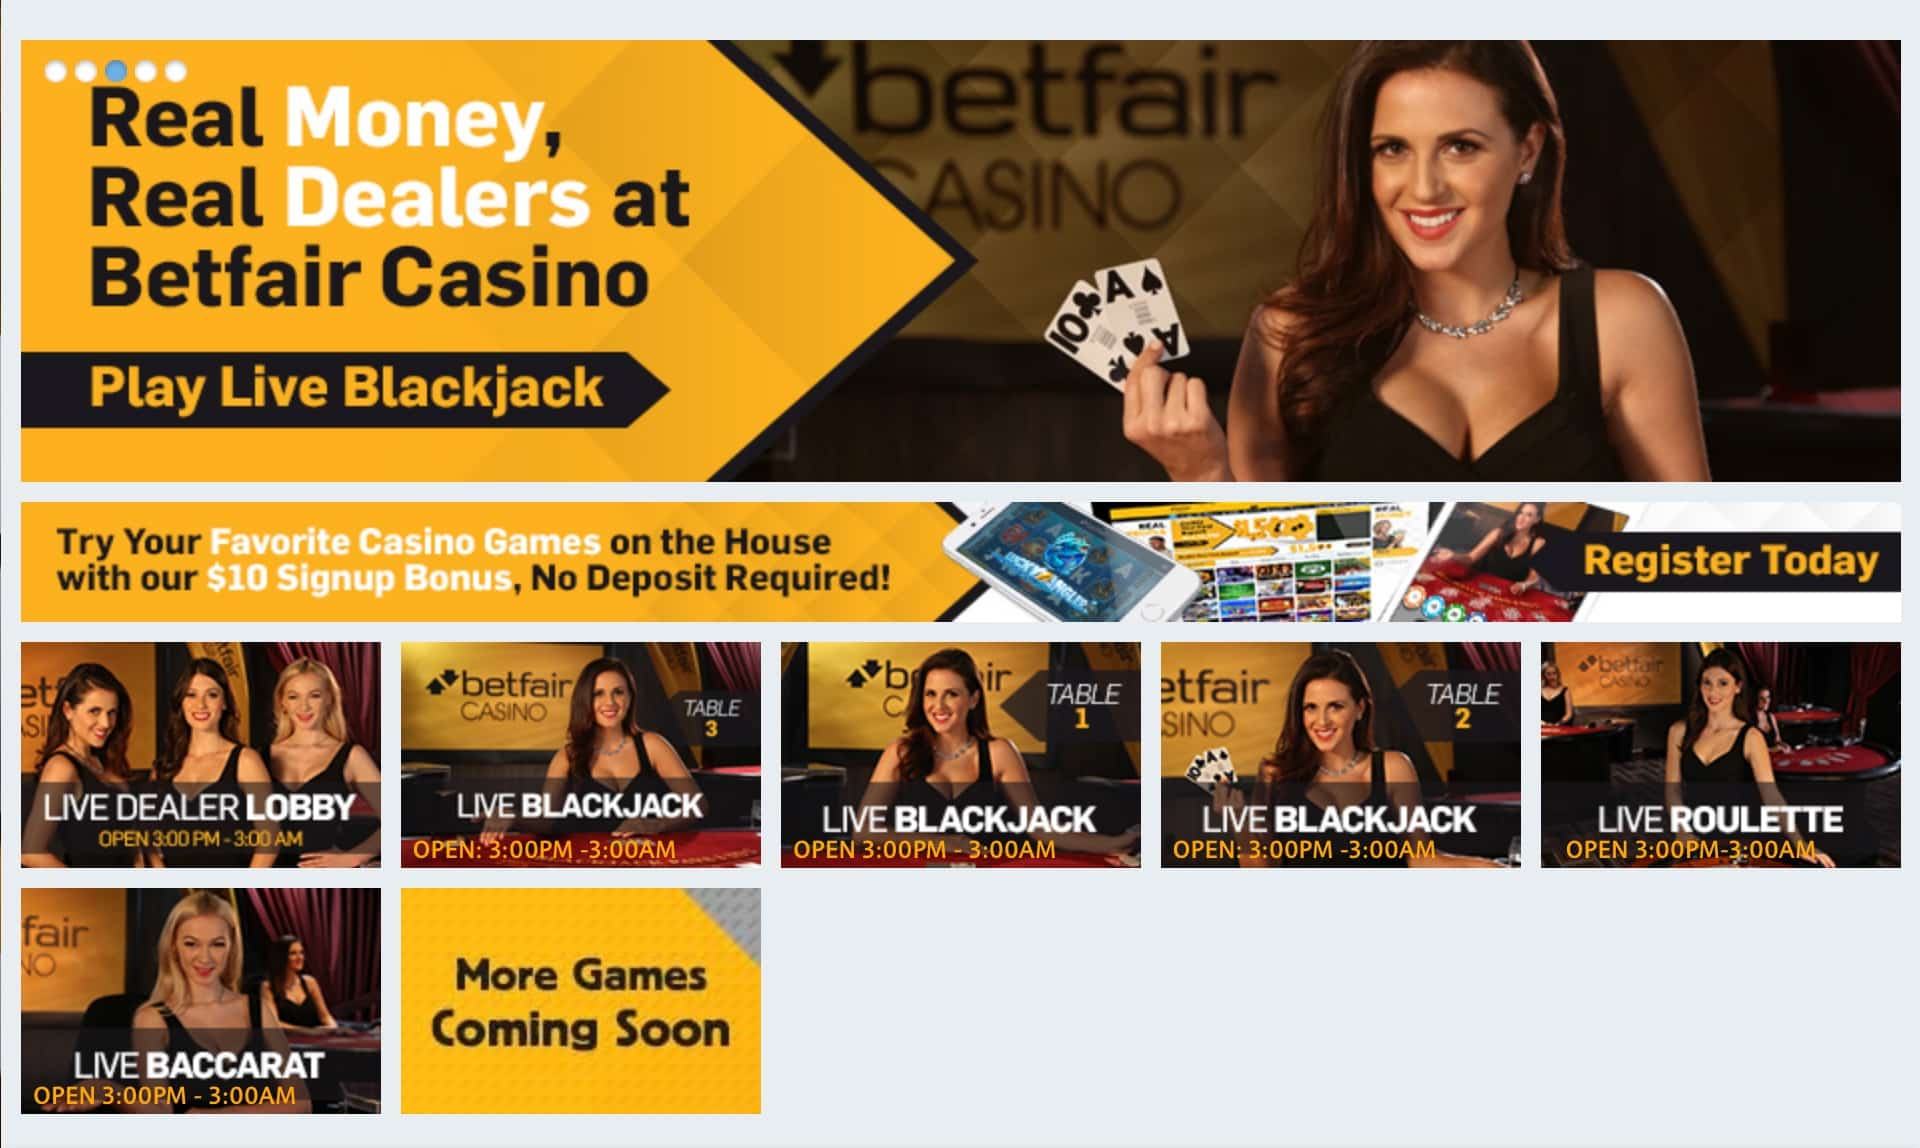 Betfair Casino NJ